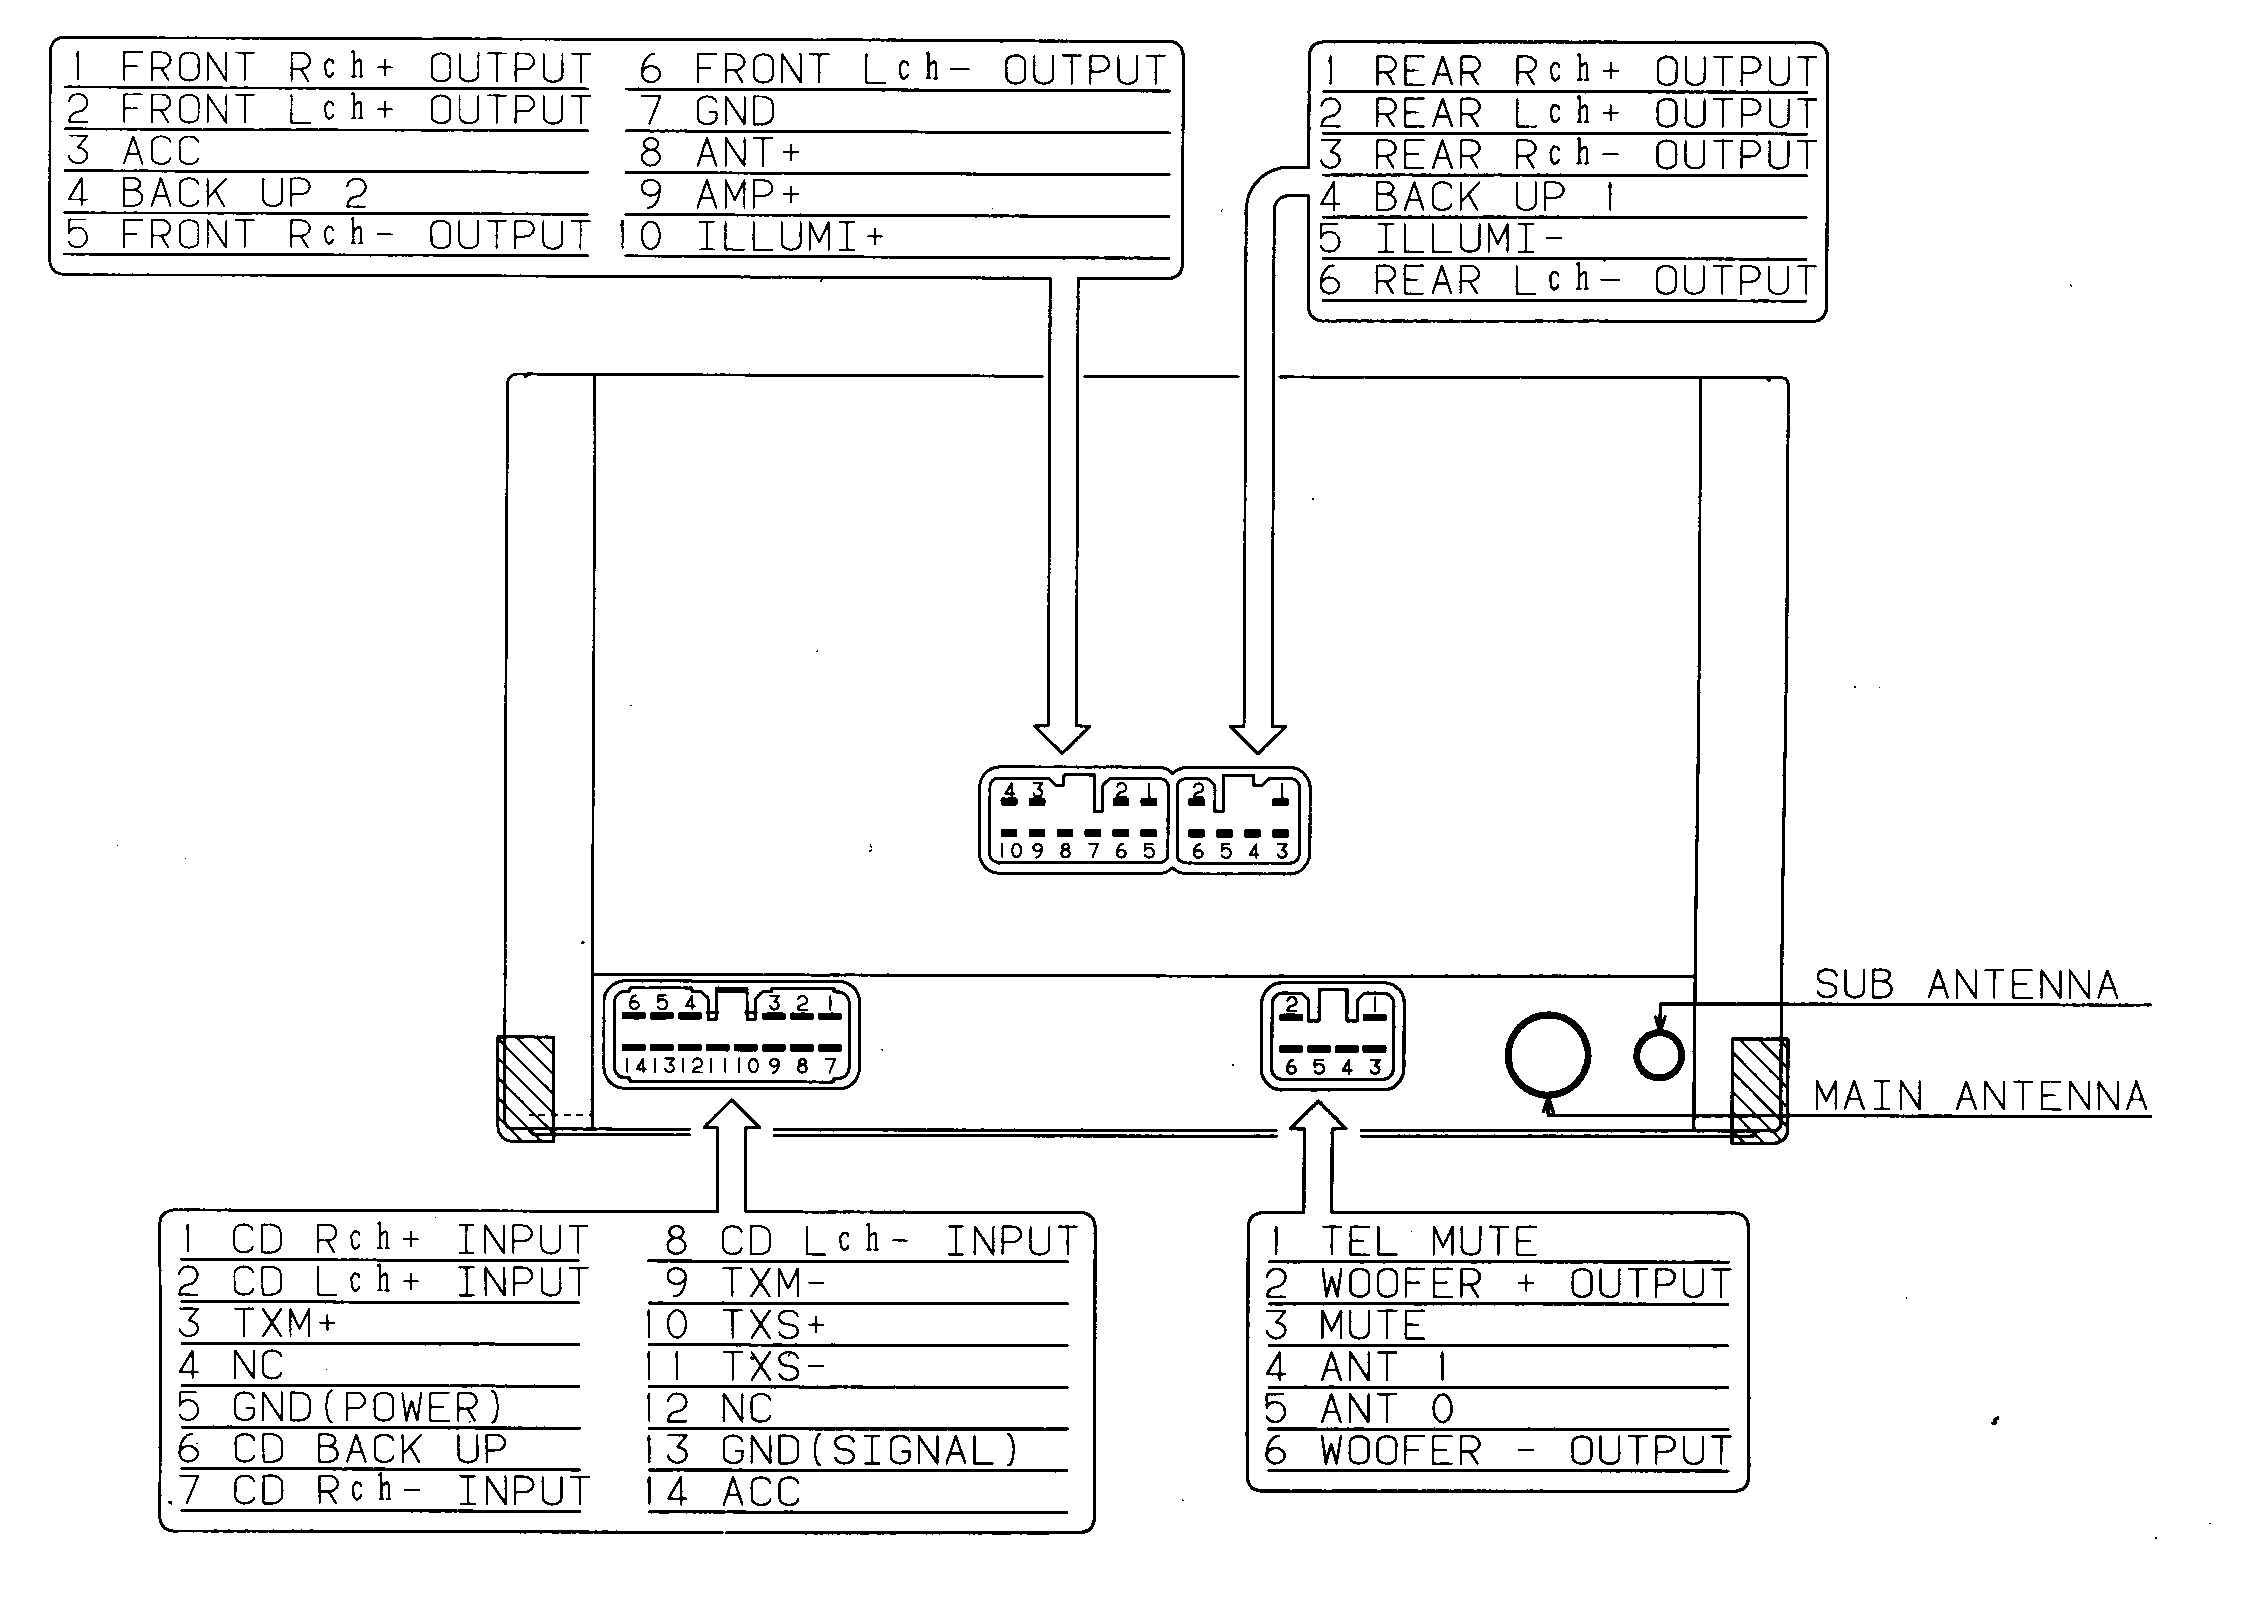 Lexus car stereo wiring diagram harness pinout connector wire amplifier wiring diagram readingrat net clarion vx409 wiring diagram at mifinder.co